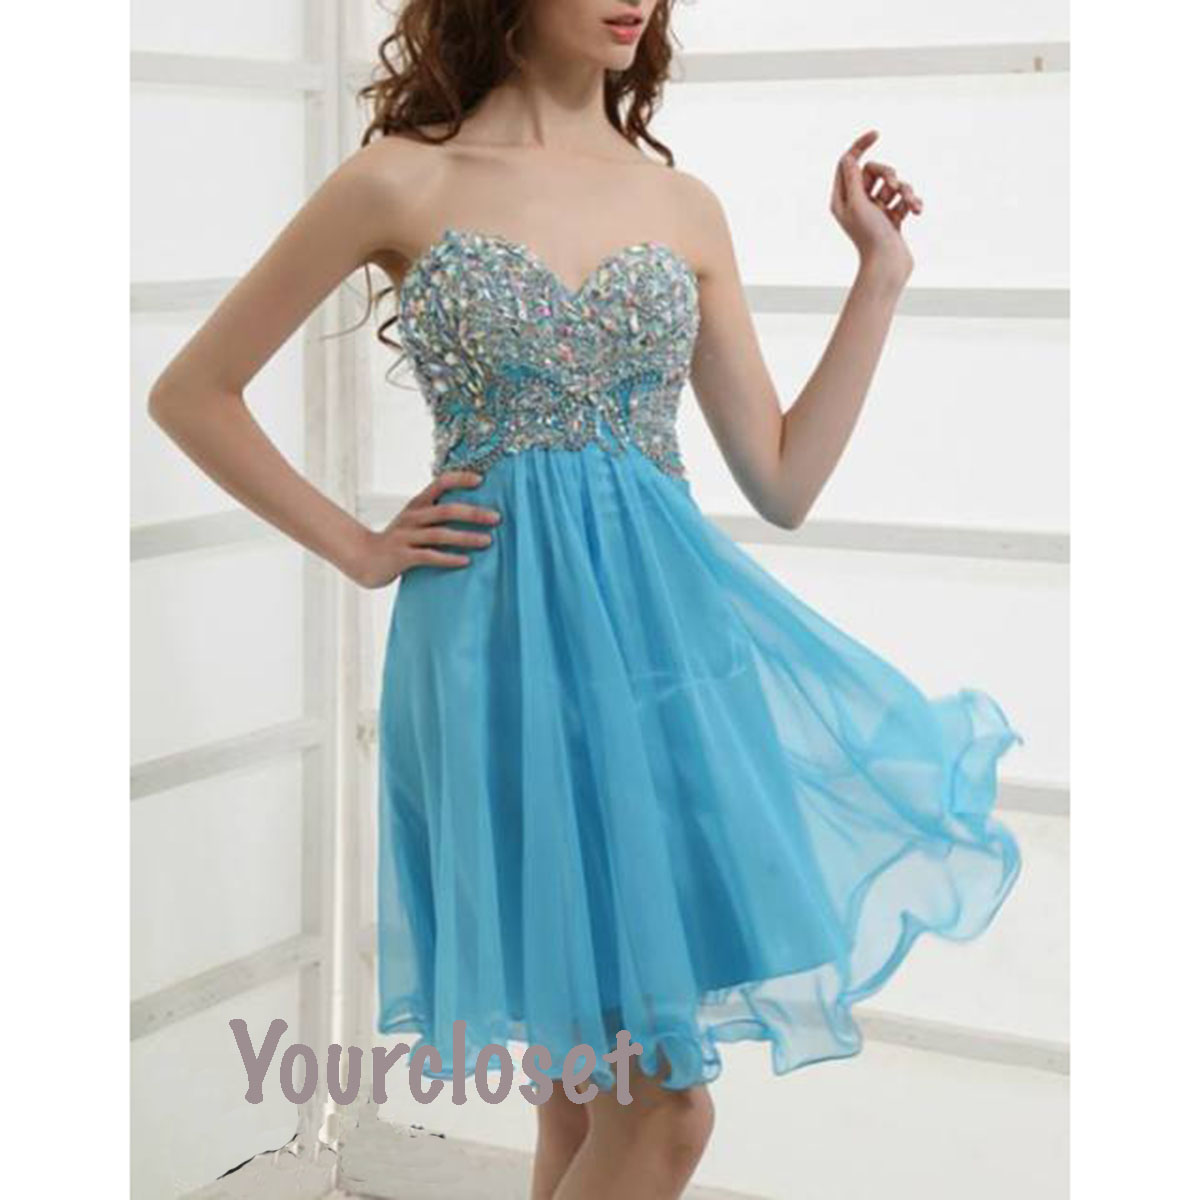 Short blue bridesmaid dresses hot girls wallpaper for Short blue wedding dresses